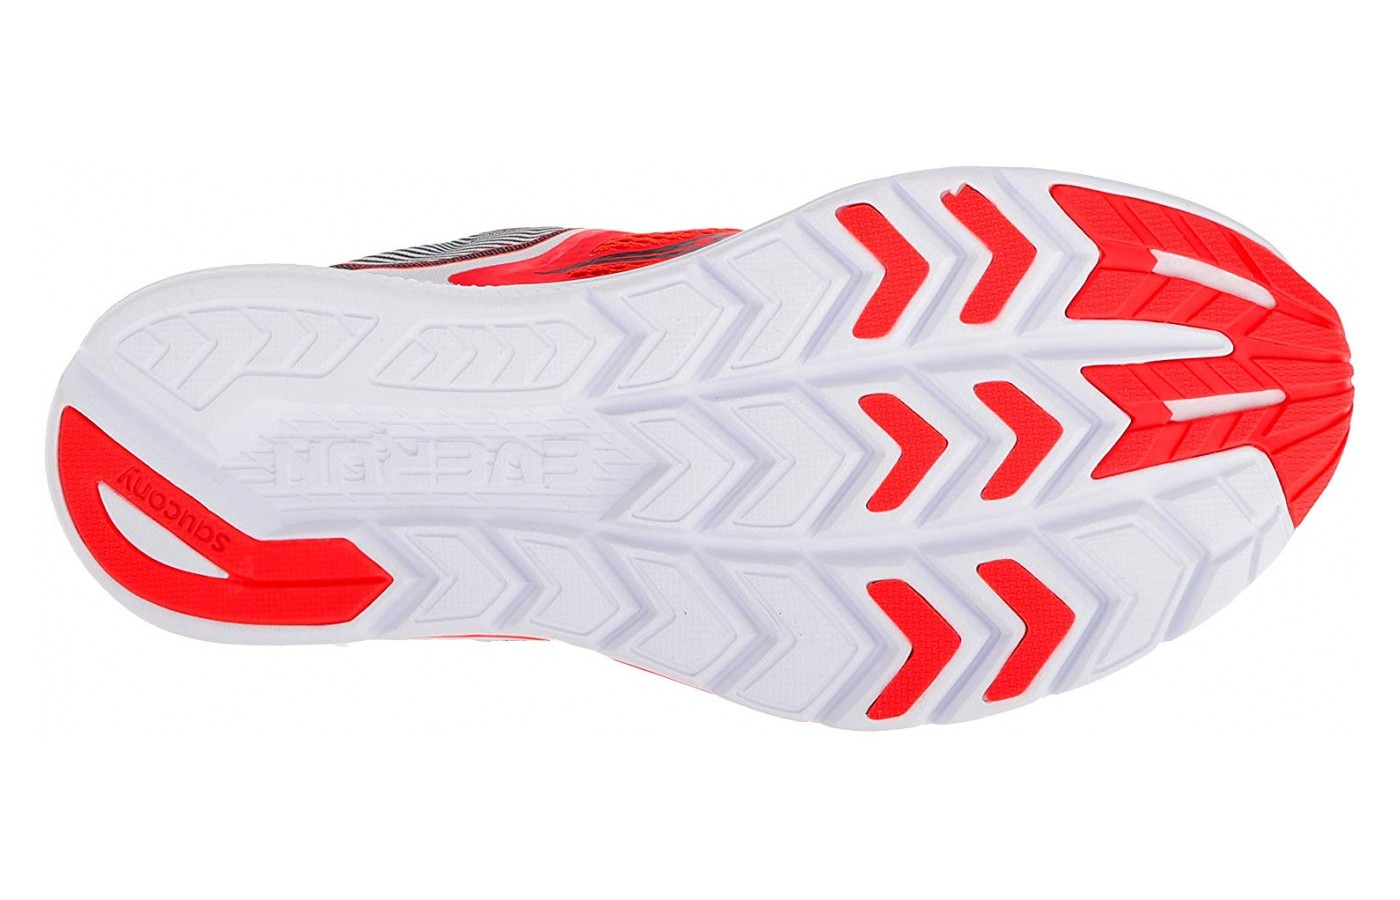 Saucony Kinvara 9 cut down on weight by only placing thick rubber where needed.